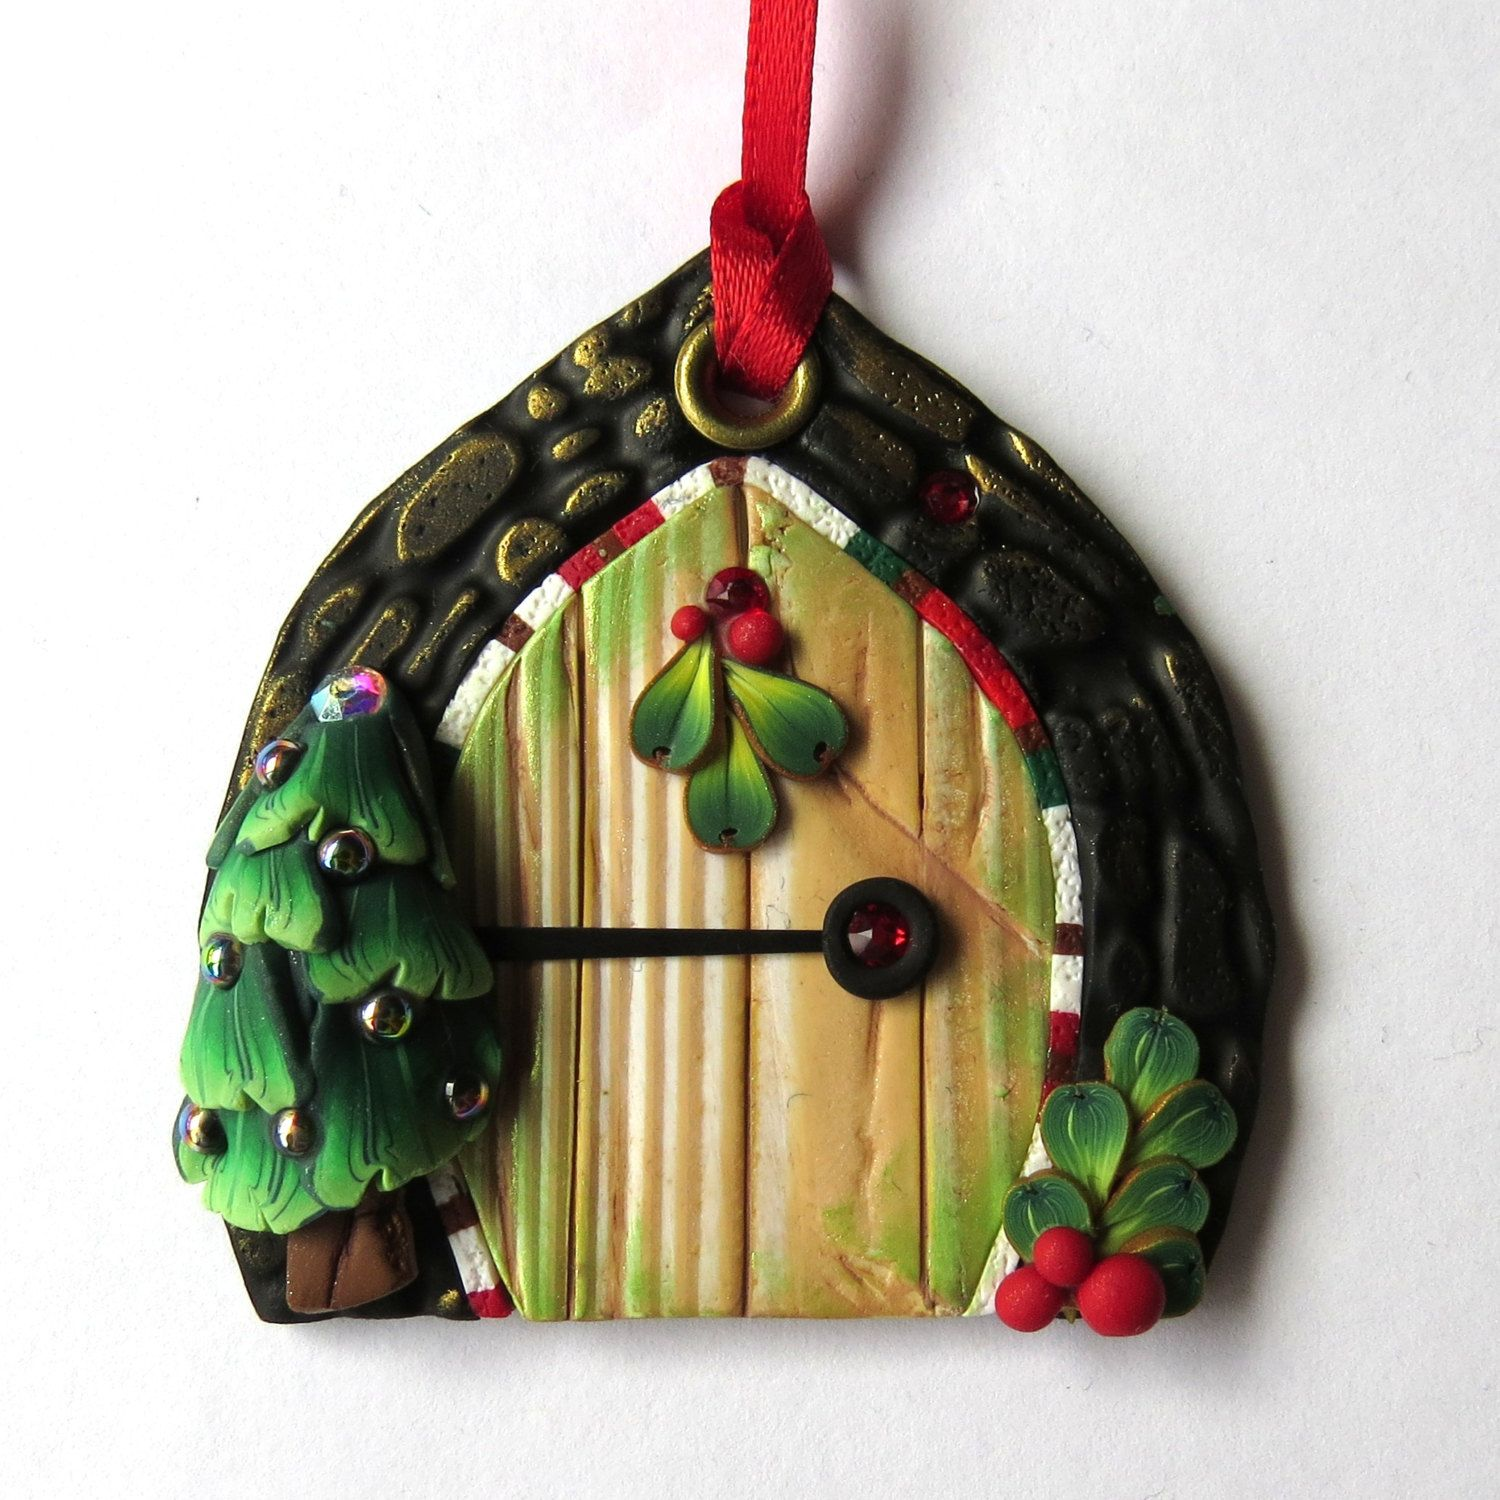 Elf Door Ornament Christmas Tree Ornament Holiday Decoration Polymer Clay Miniature Holiday  sc 1 st  Pinterest & Elf Door Ornament Christmas Tree Ornament Holiday Decoration ...